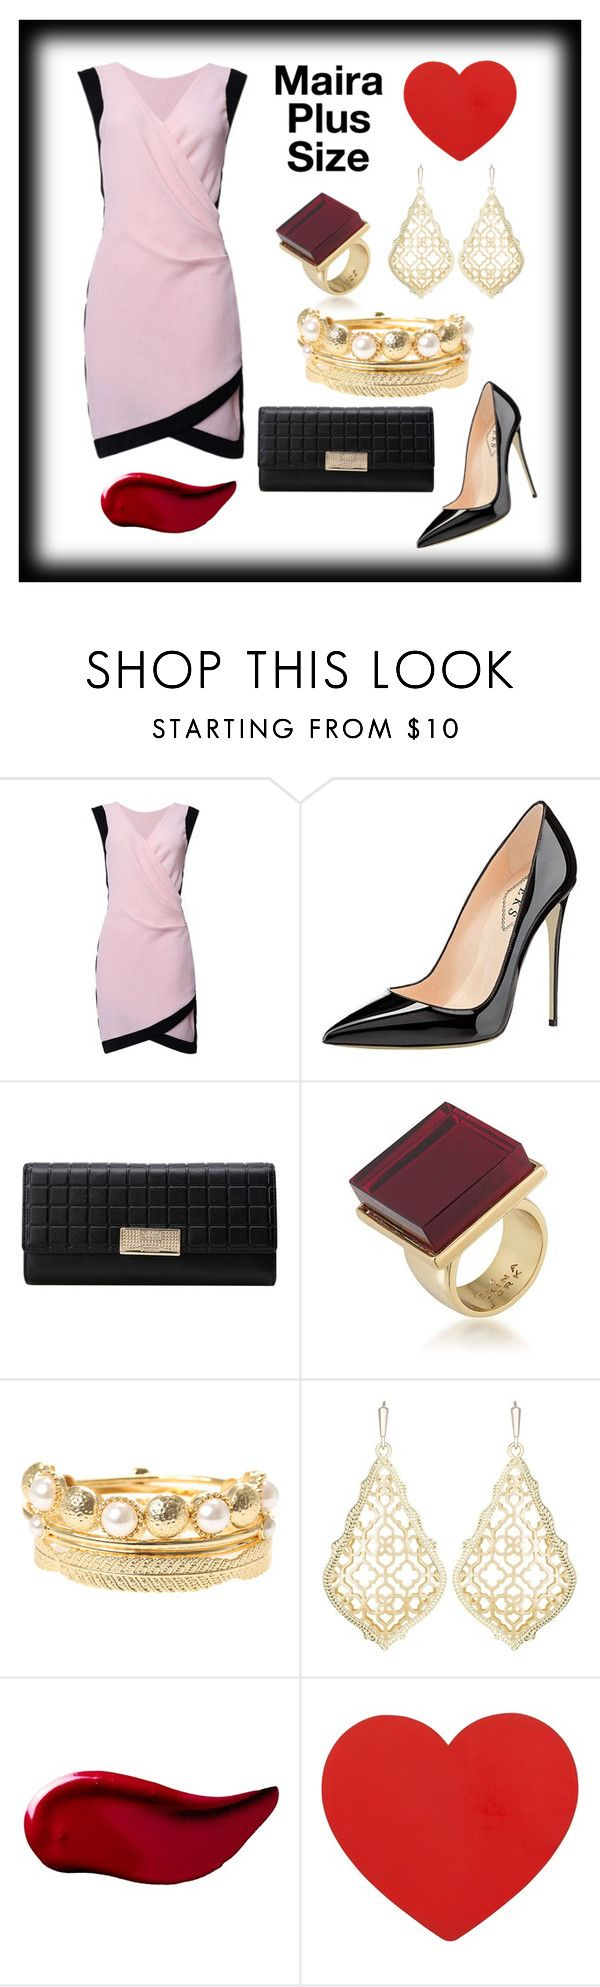 """""""Maira's Date Look"""" by mairaplussize ❤ liked on Polyvore featuring Trina Turk, Kendra Scott and Kat Von D"""